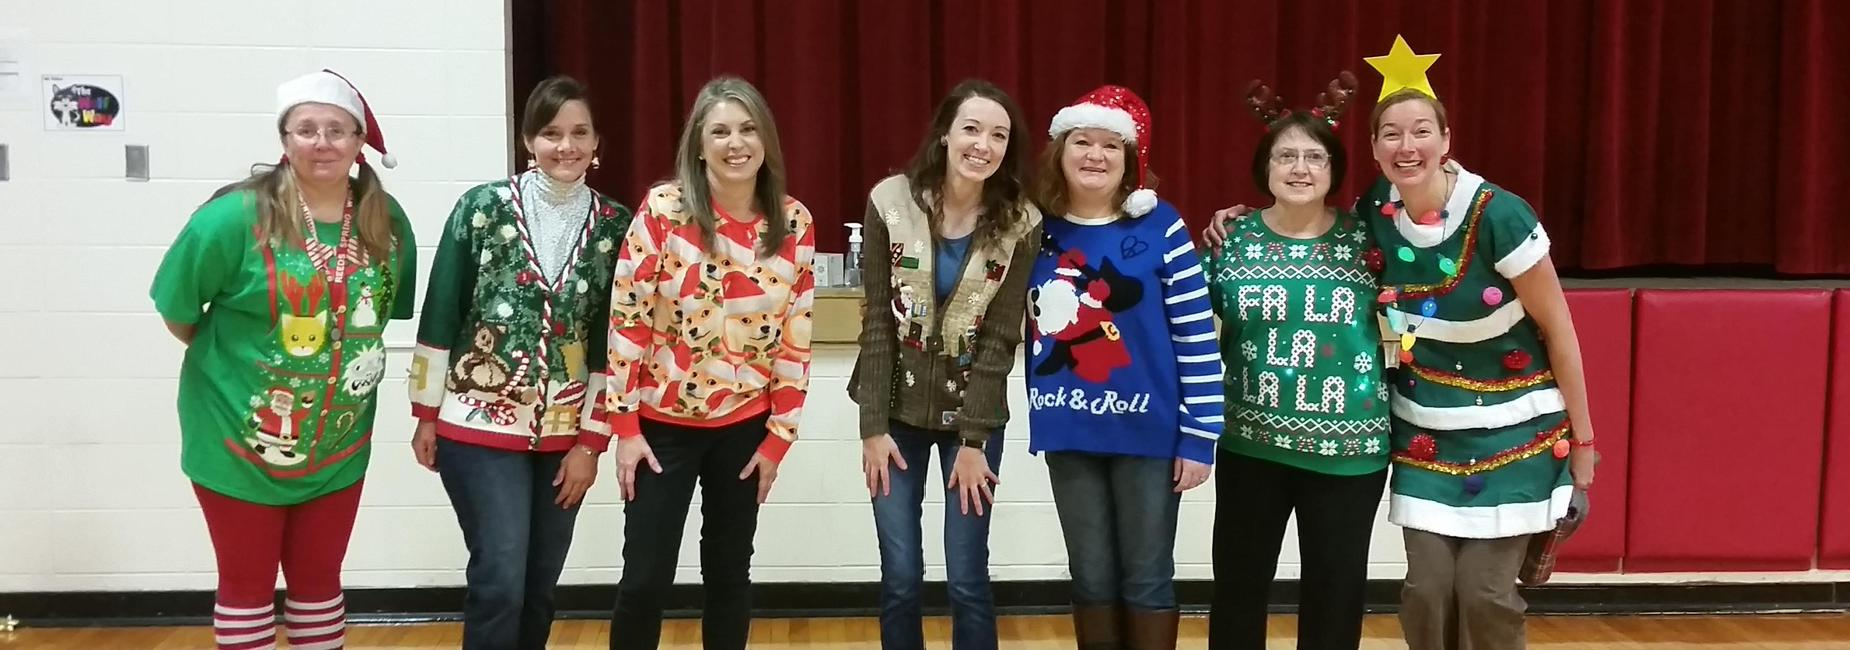 Christmas sweater contest